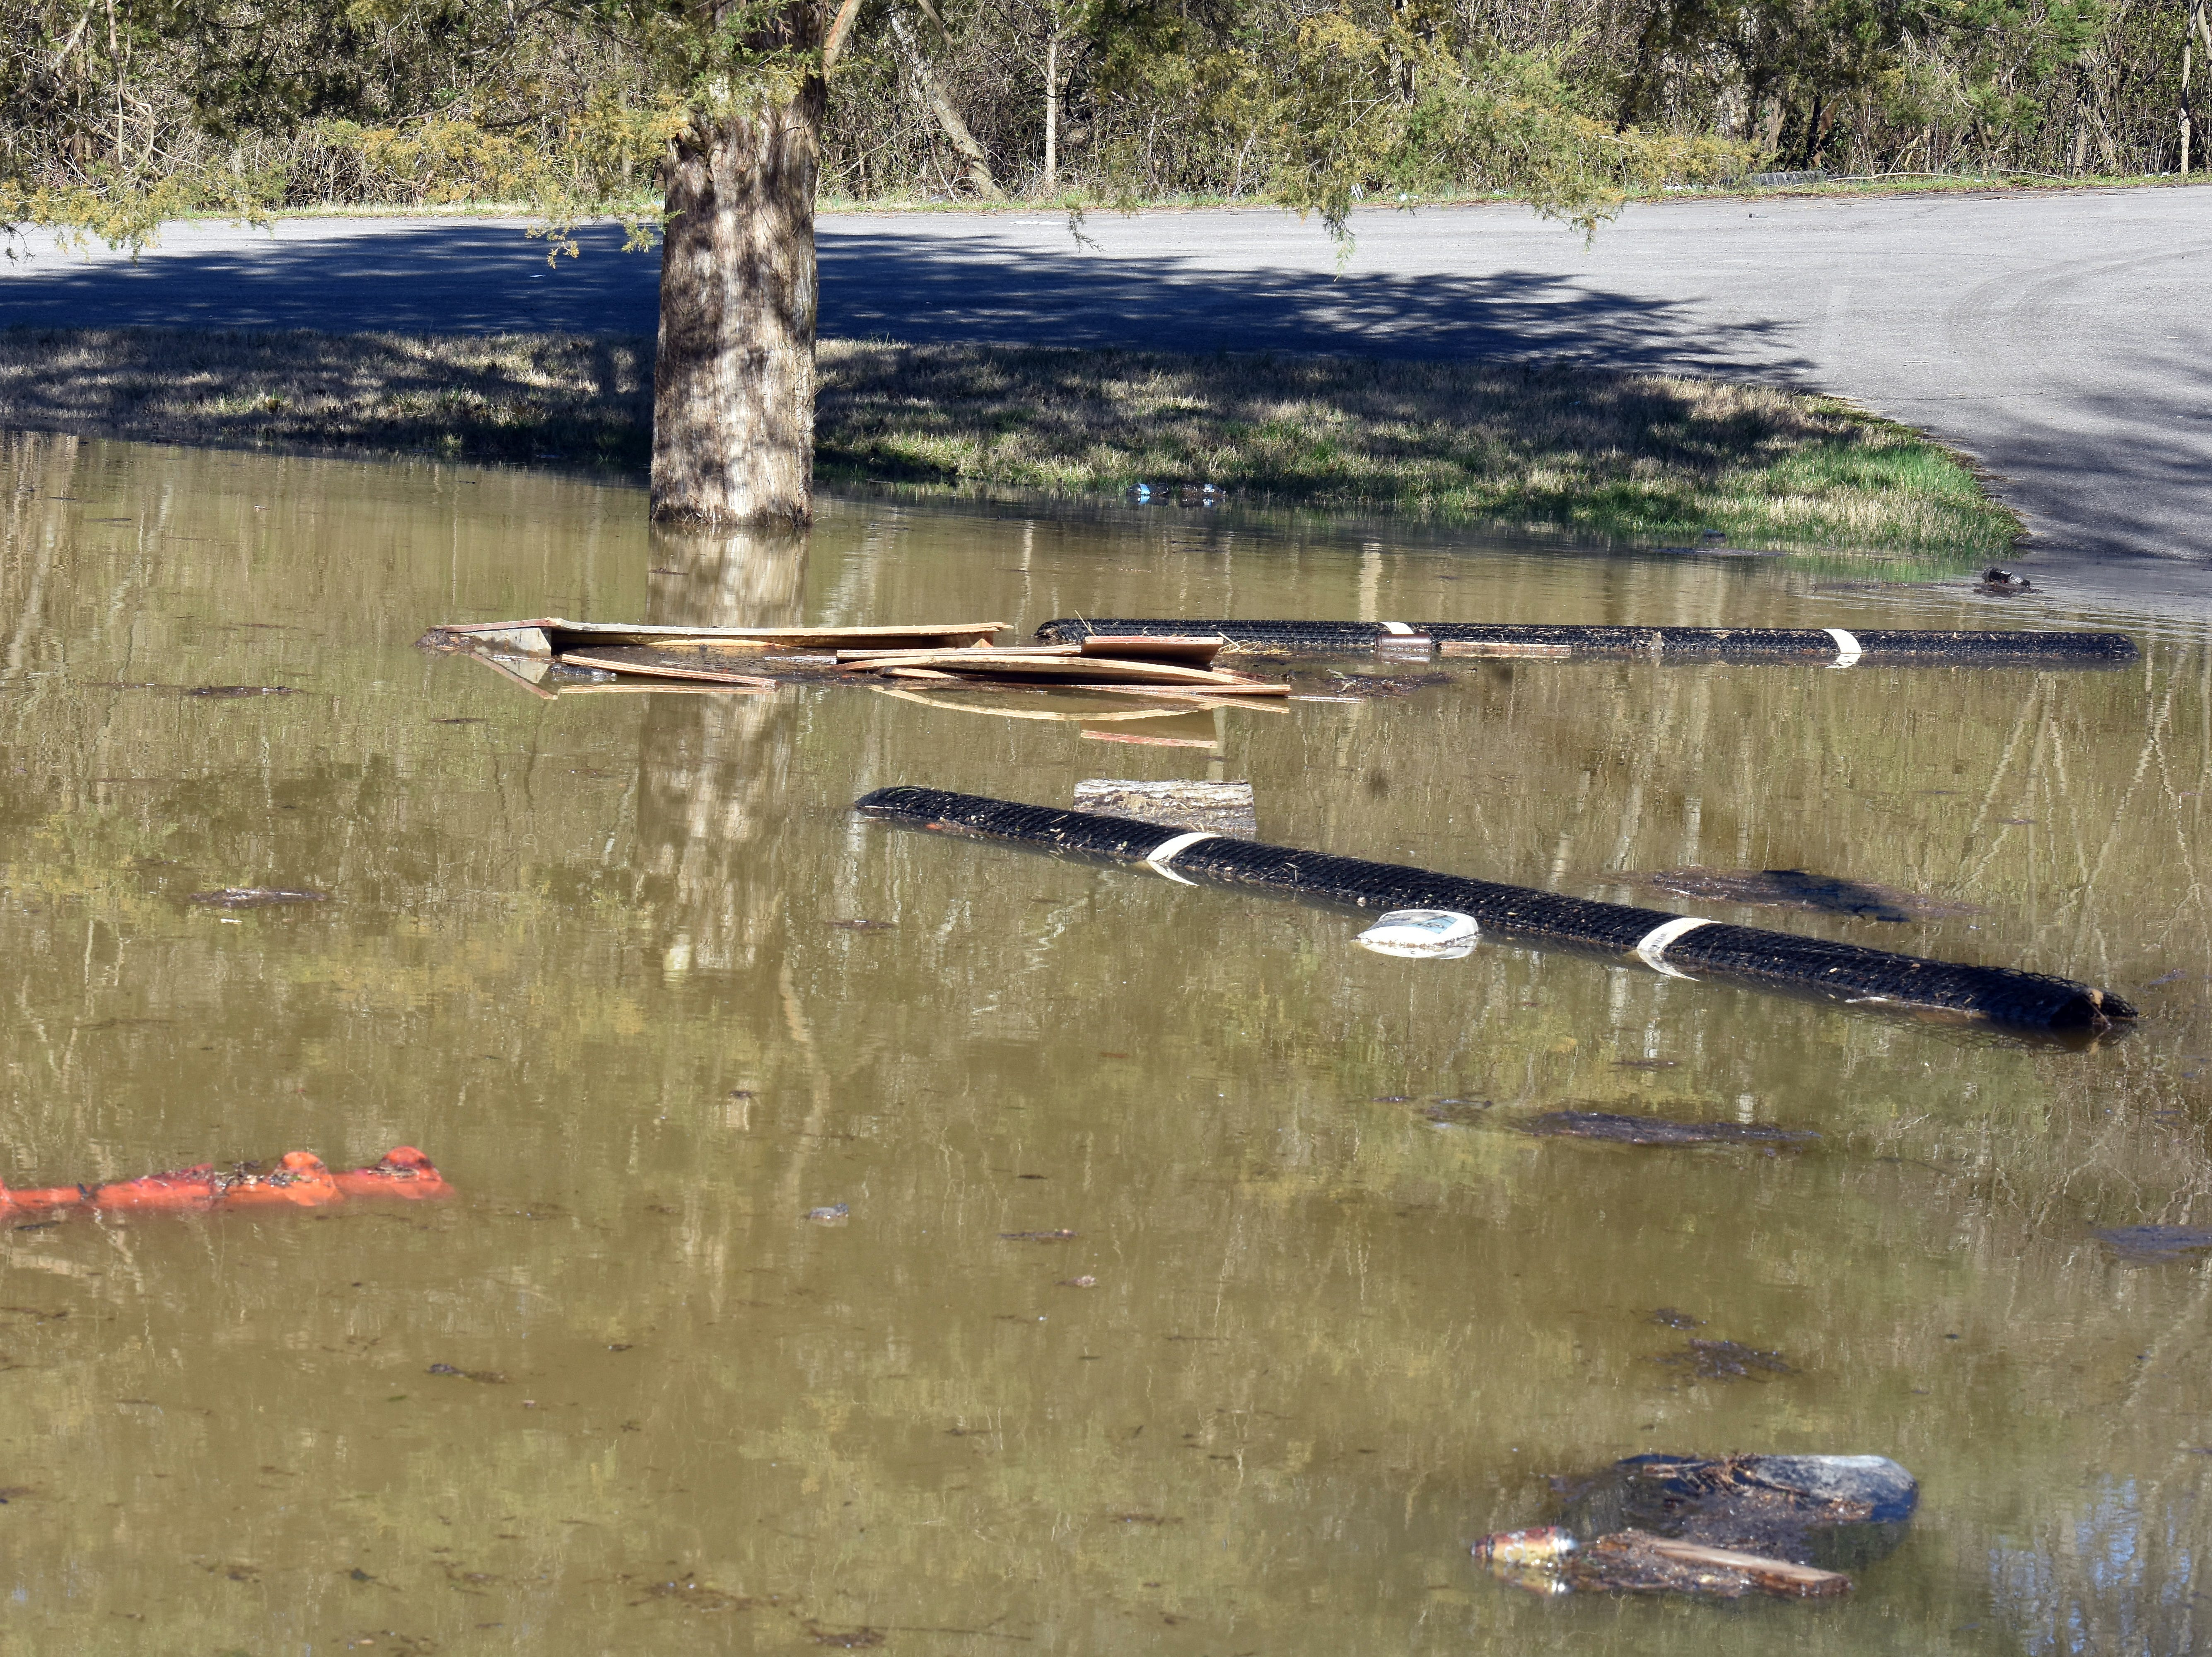 Debris floats in flood waters in the side lot of Harrison Construction Company on Spring Hill Road.